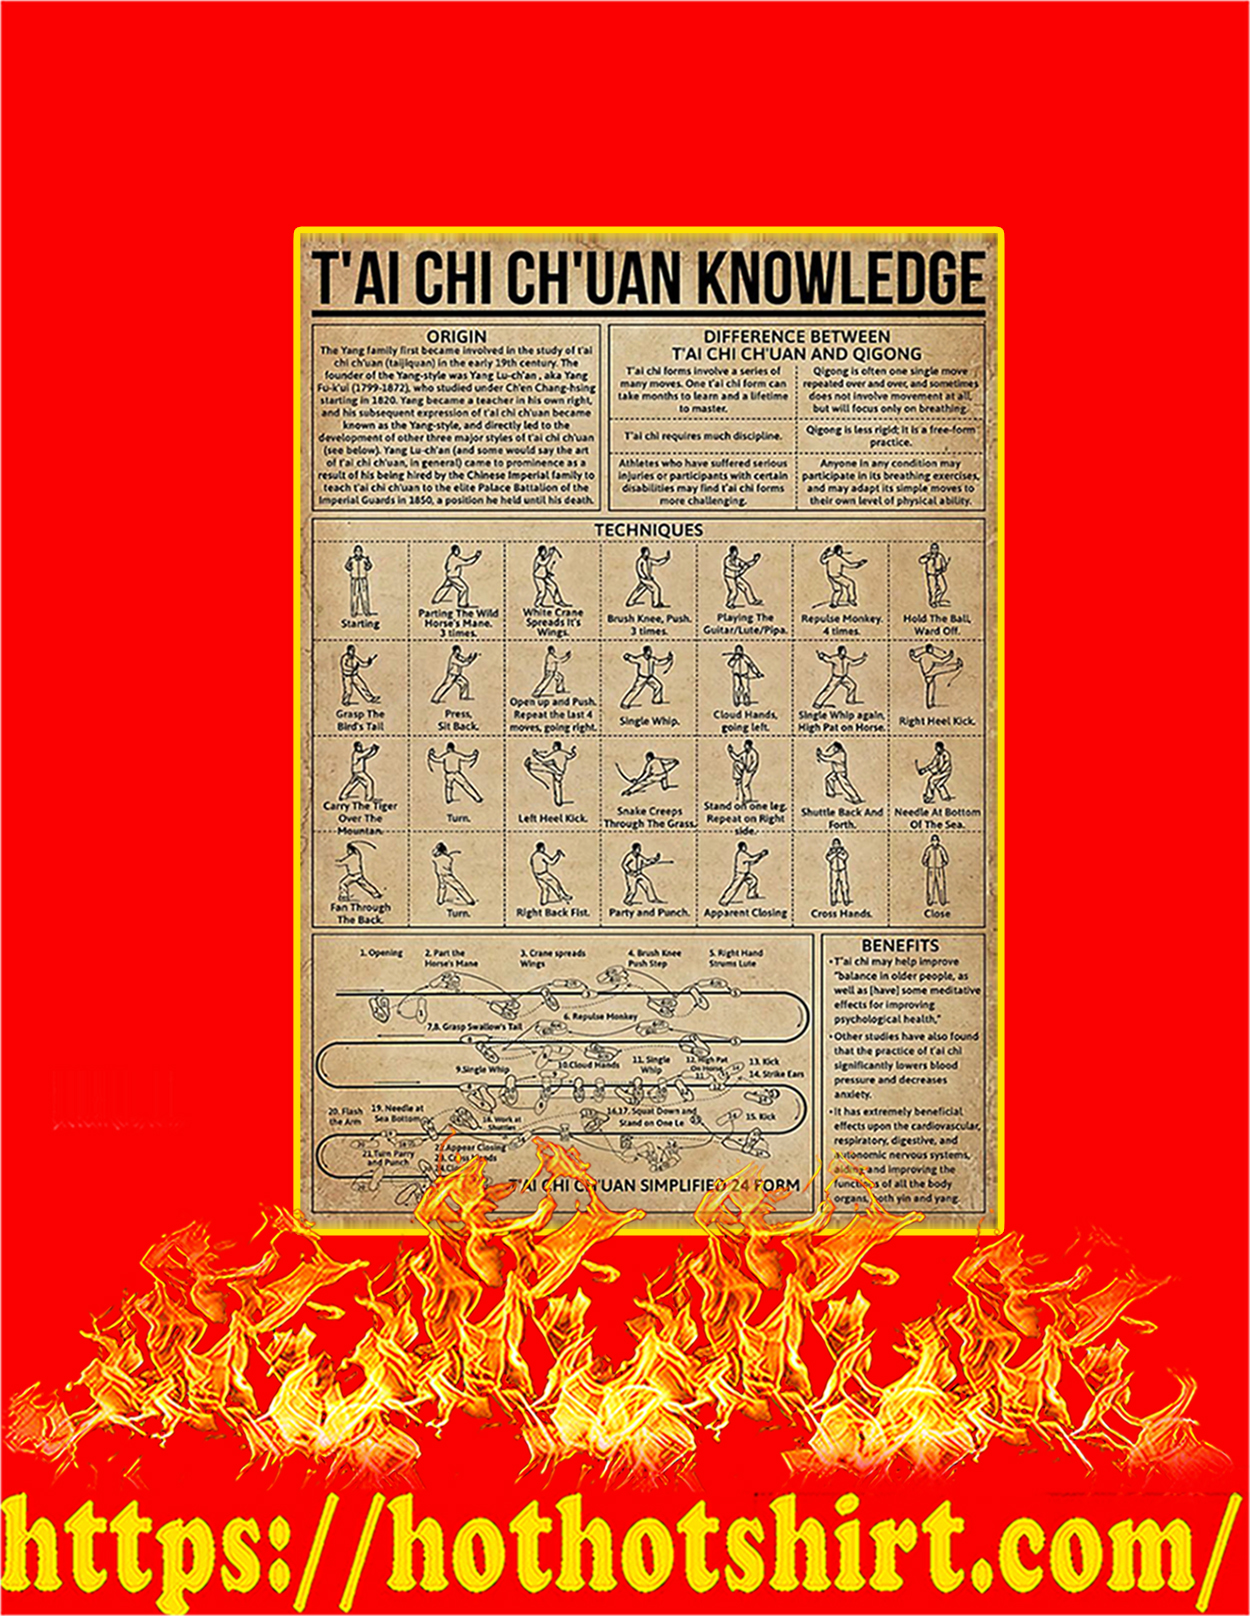 T'ai chi ch'uan knowledge poster - A3